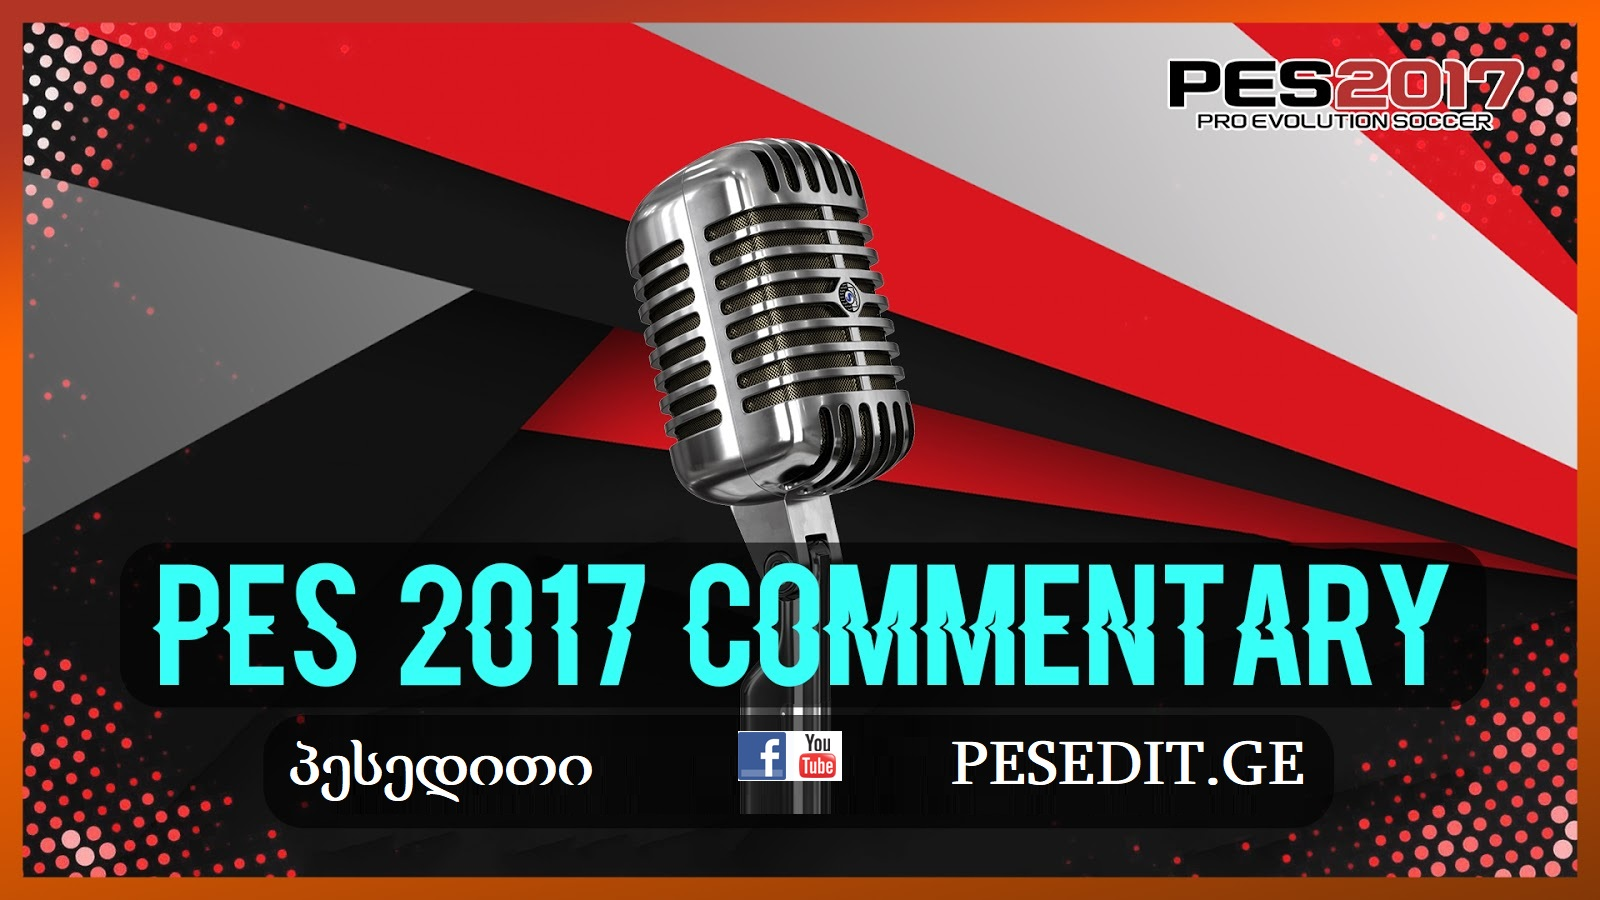 Pes2017 Commentary germany